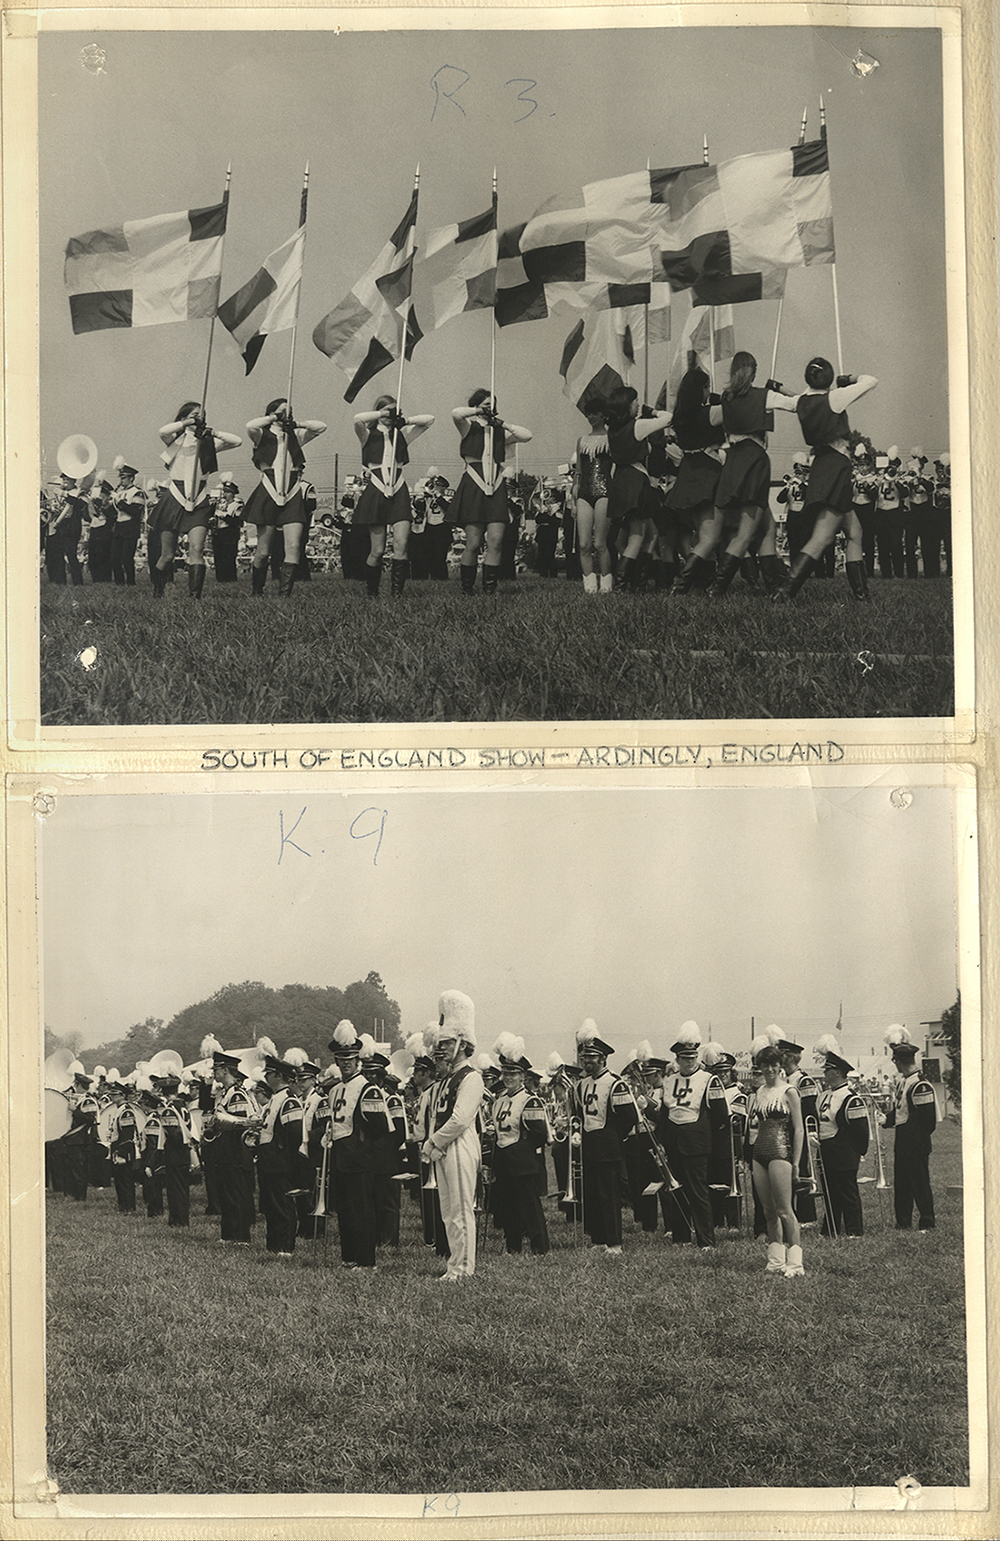 UConn Marching Band 1970 European Tour scrapbook page, with two photos of the 'South of England Show' in Ardingly, England